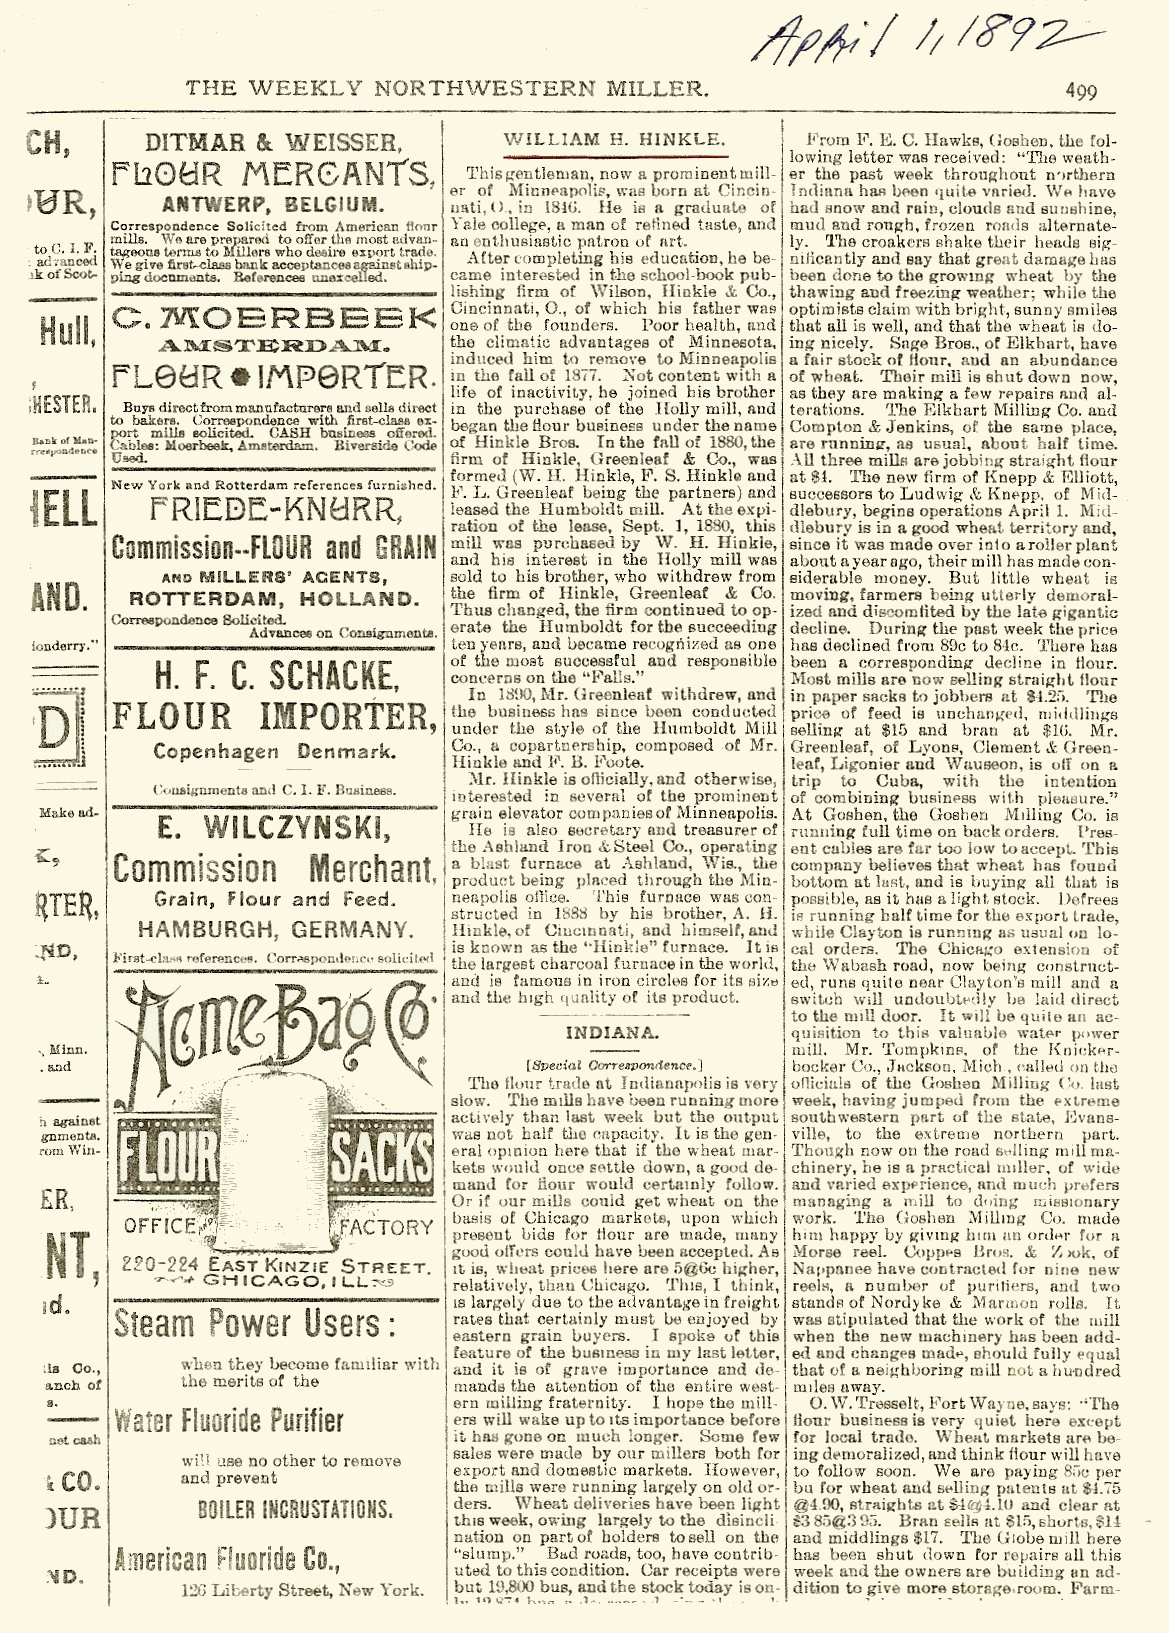 Hinkle-Murphy House, 1886 619 South 10th Street Minneapolis, Minnesota Architect: William Channing Whitney The Weekly Northwestern Miller April 1, 1893 page 499